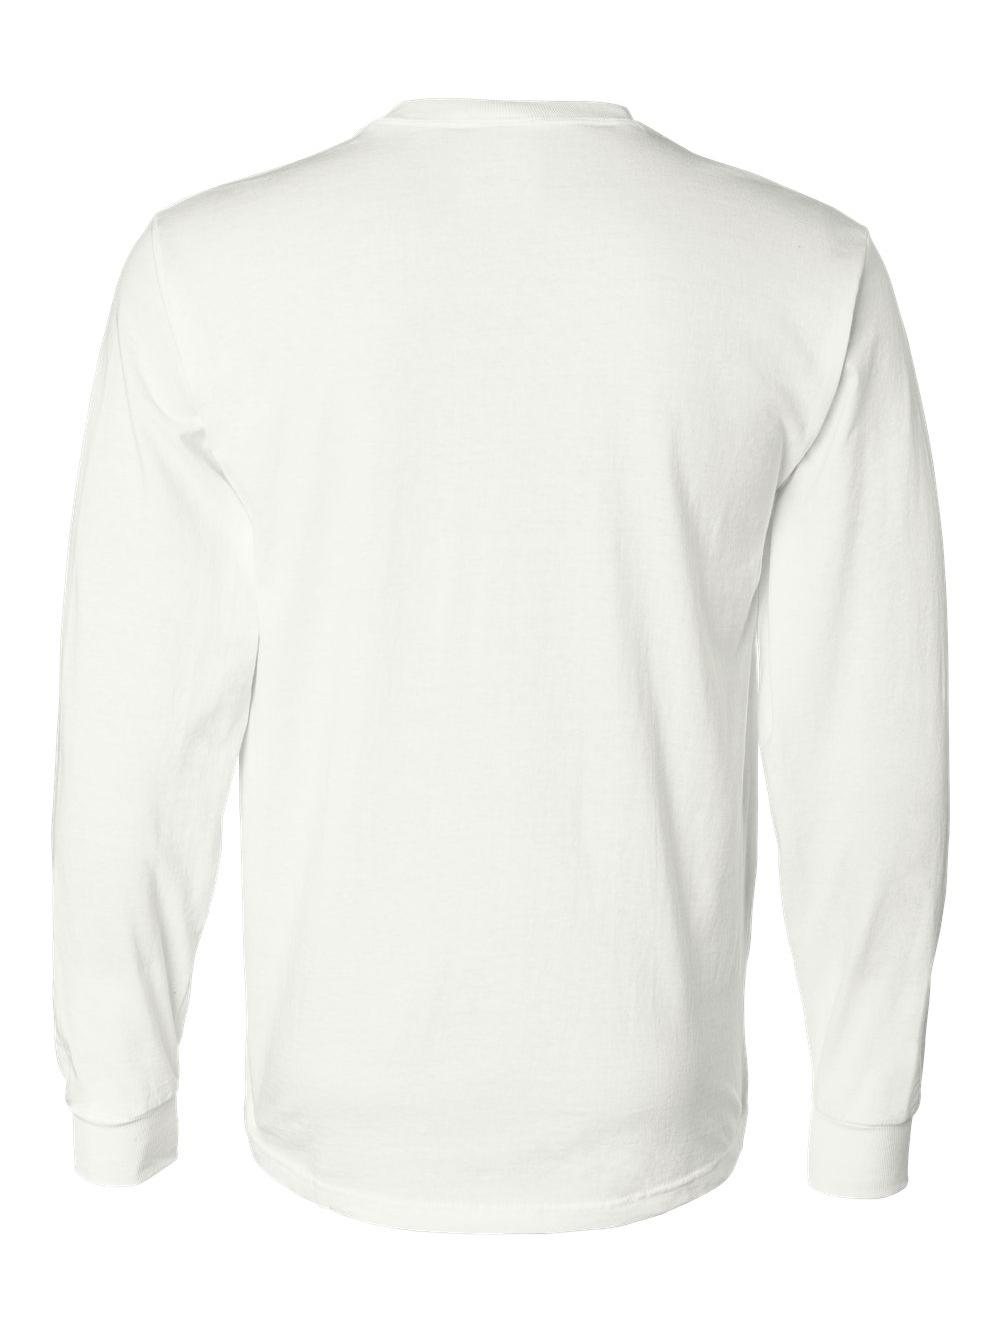 Fruit-of-the-Loom-HD-Cotton-Long-Sleeve-T-Shirt-4930R thumbnail 79